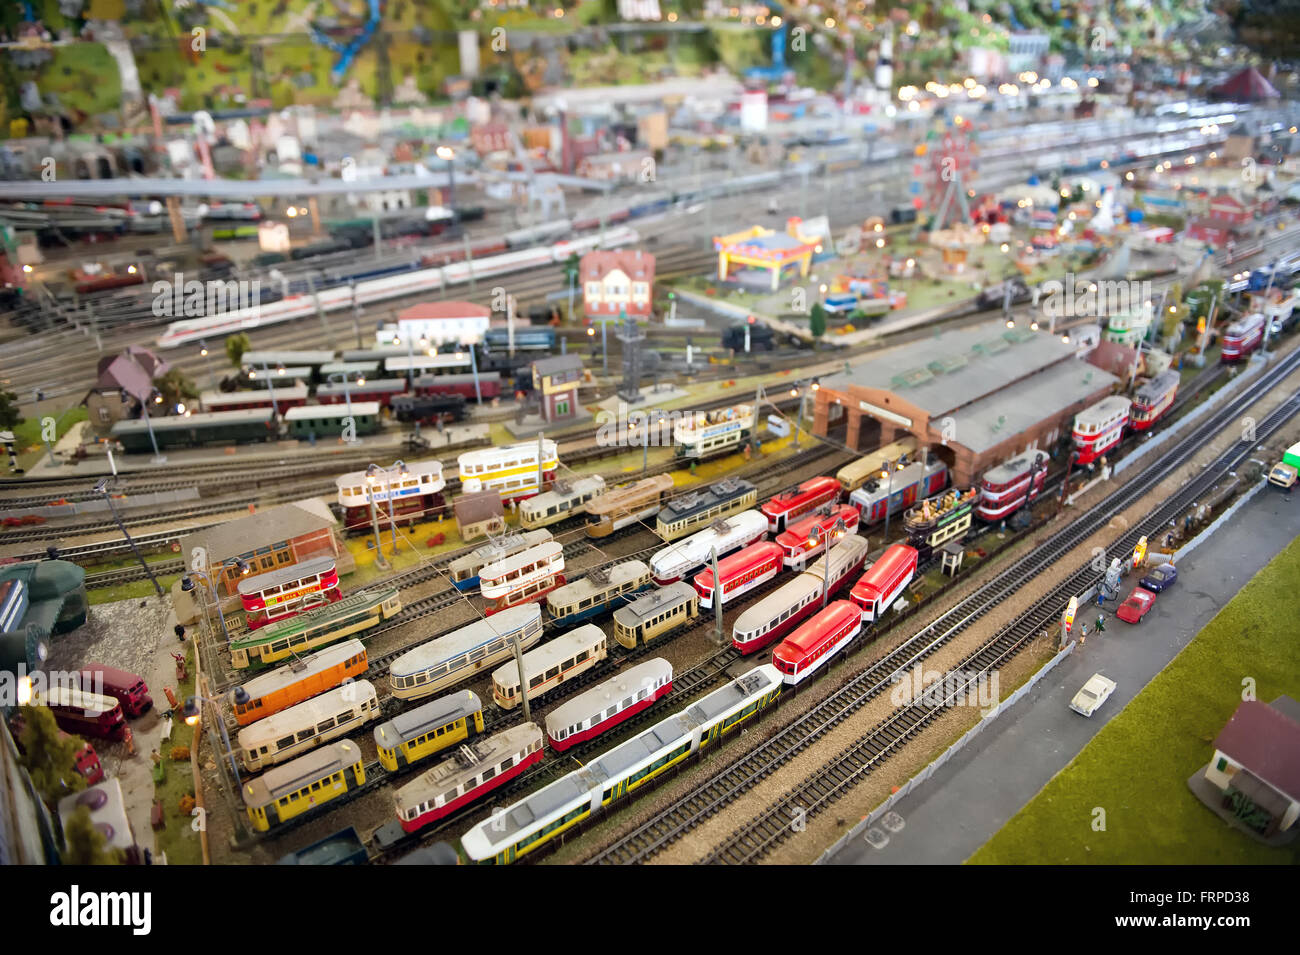 Miniature model of a railway terminal and station in a modern city with rolling stock, passengers and cars Stock Photo